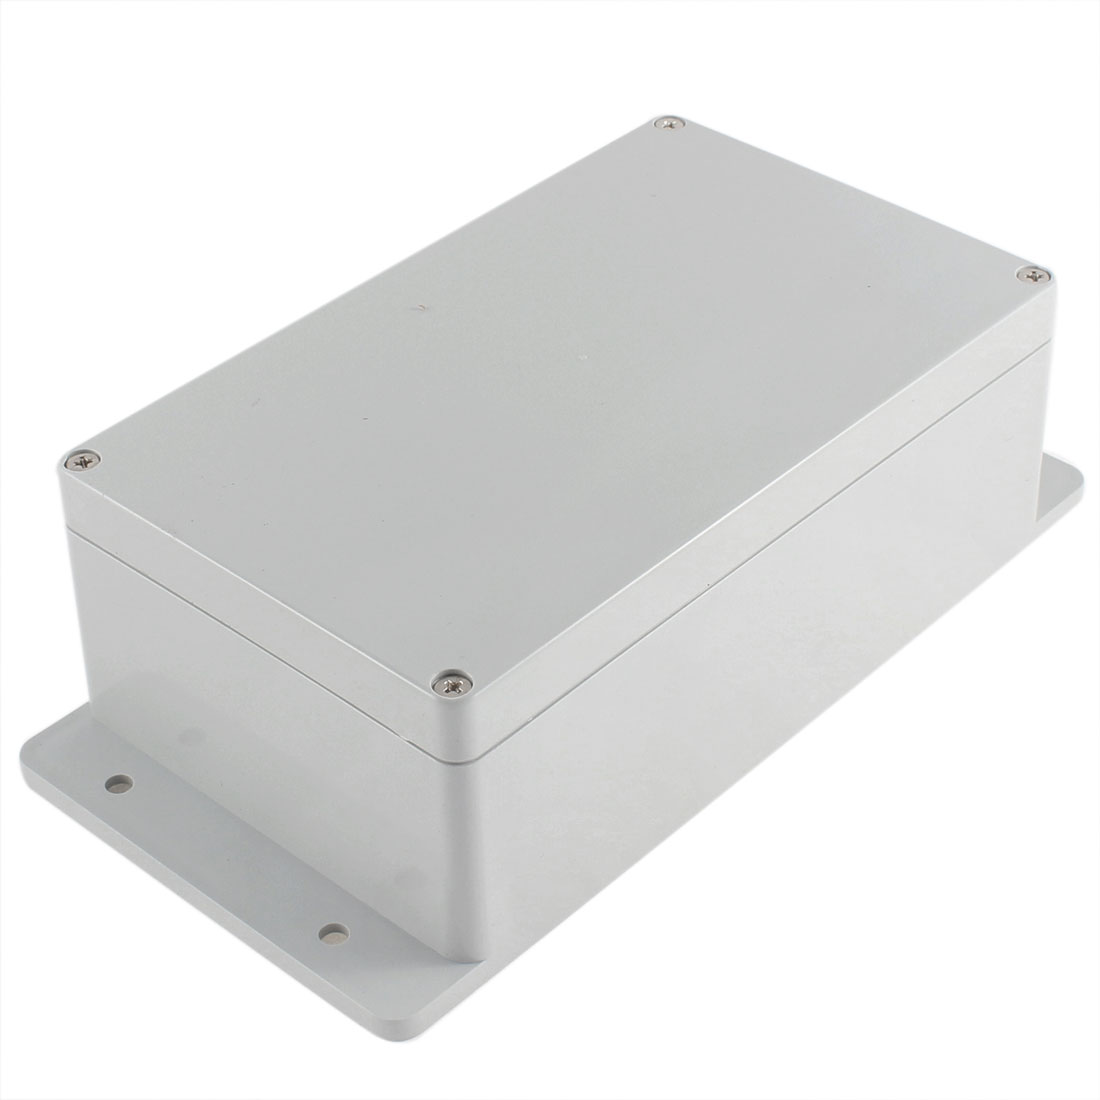 Dustproof IP65 Wall-mounted Junction Electronic Project Box Case 198 x 122 x 75mm